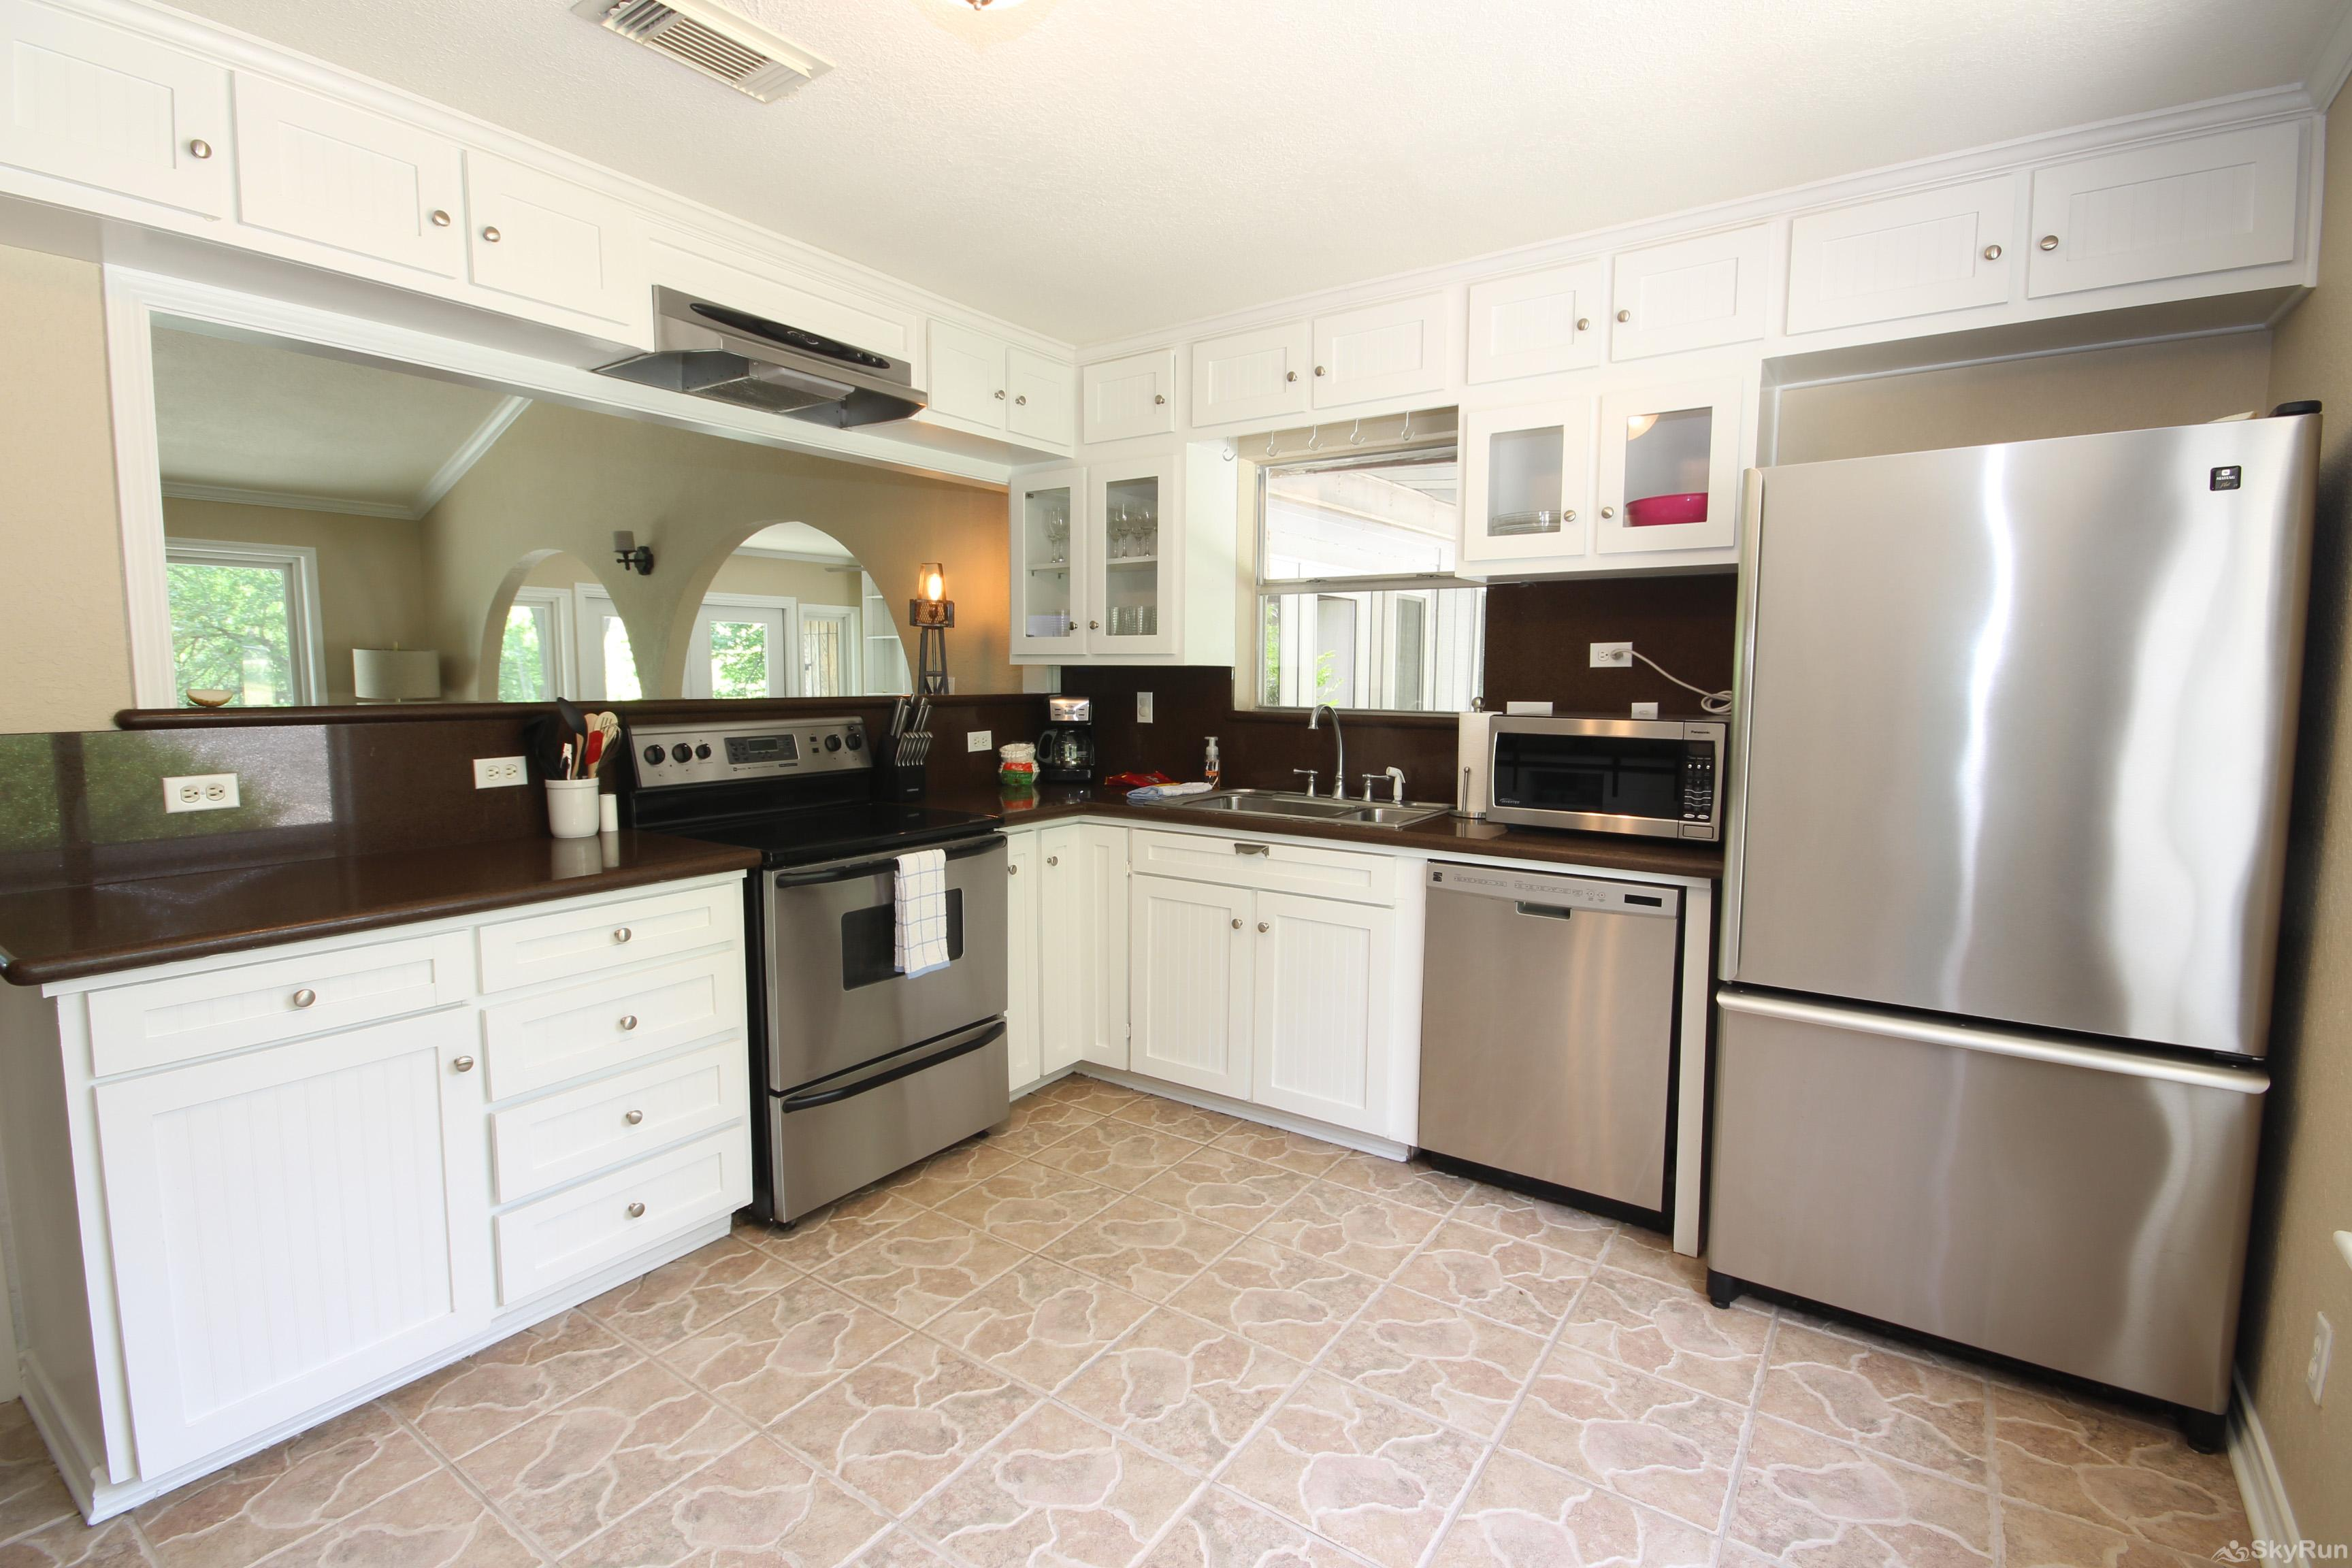 MAVERICK'S RIVER HAUS & GUEST HAUS Stainless Steel Appliances in Kitchen